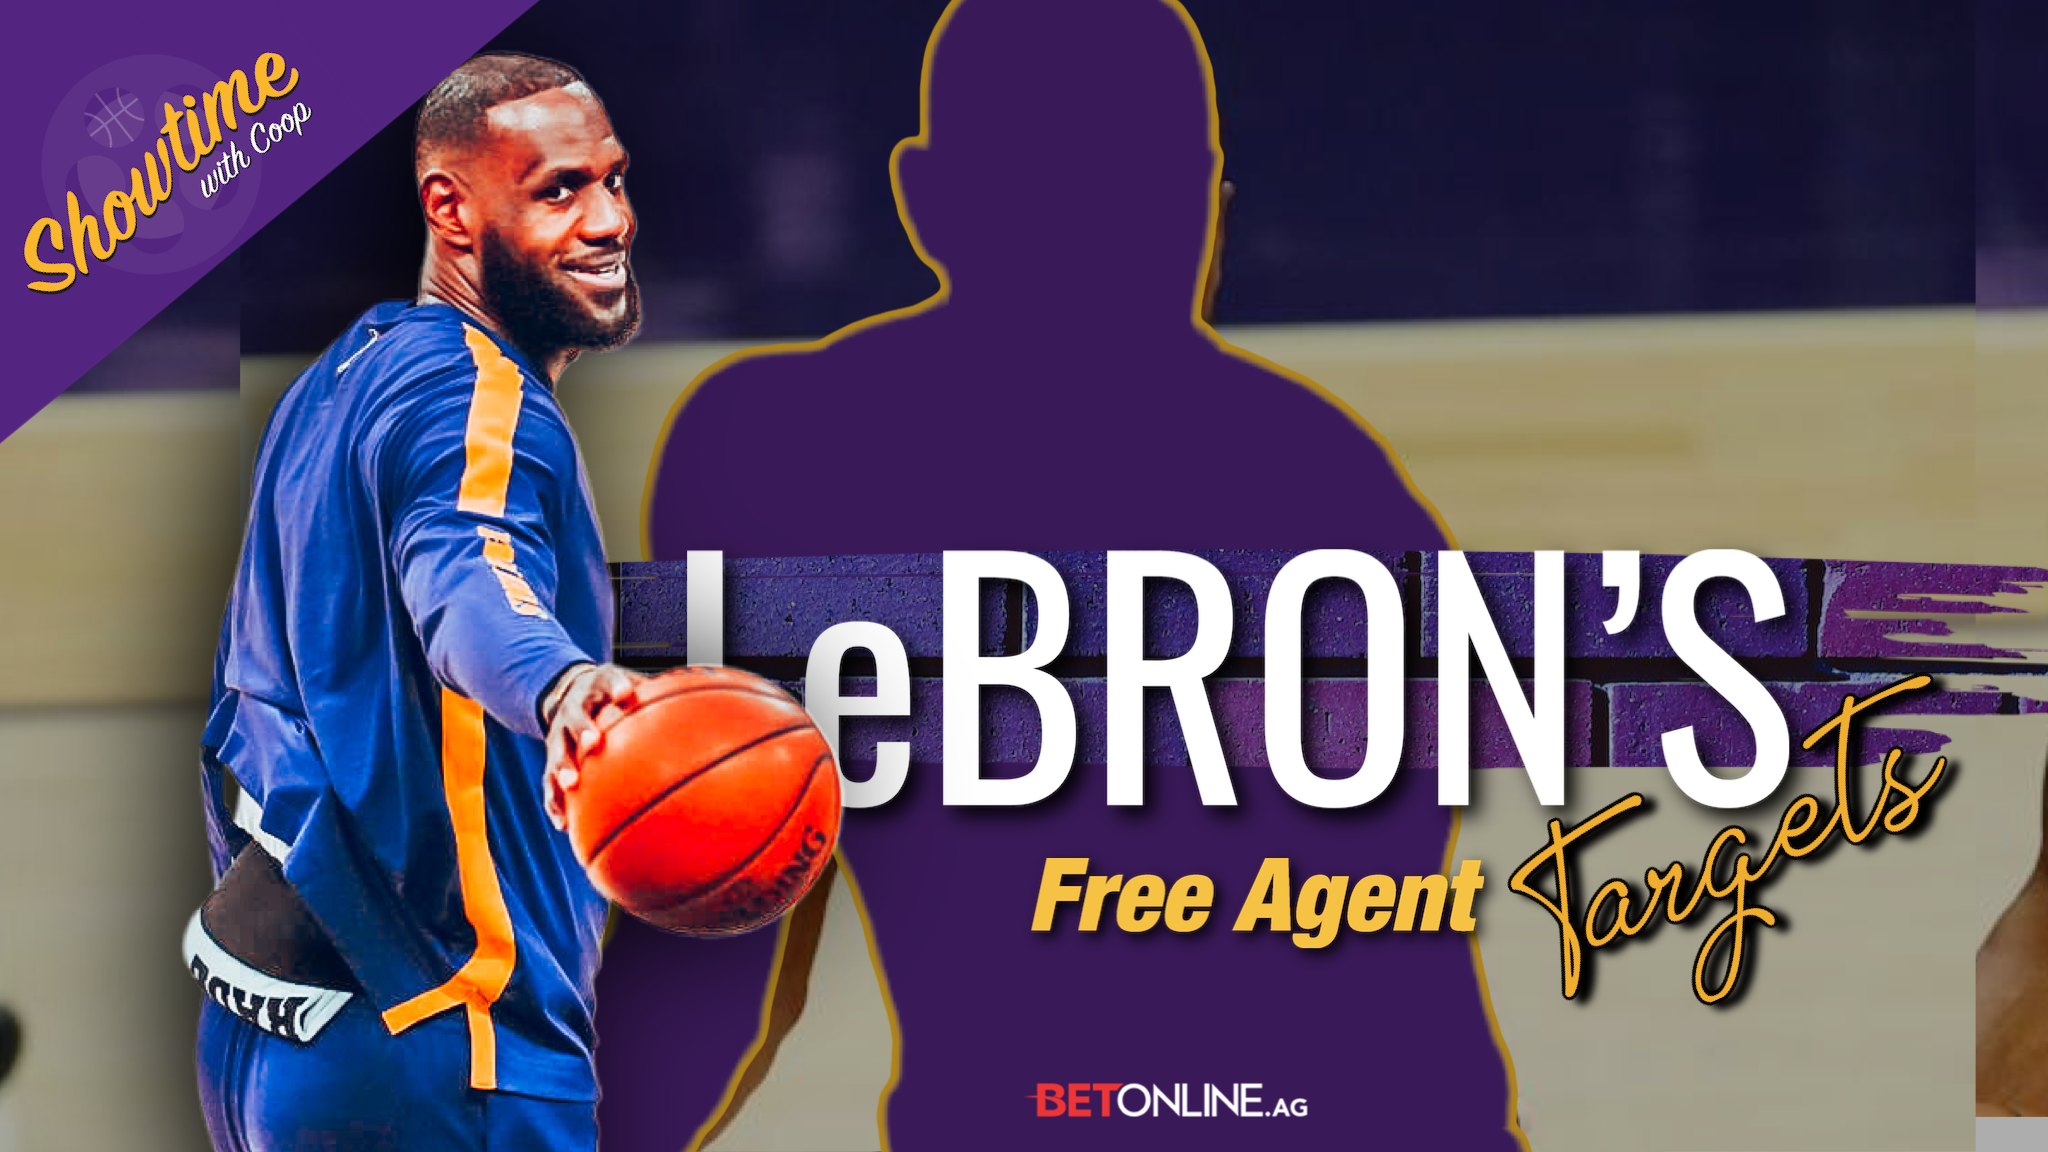 The start of NBA Free Agency for the #Lakers w Coop